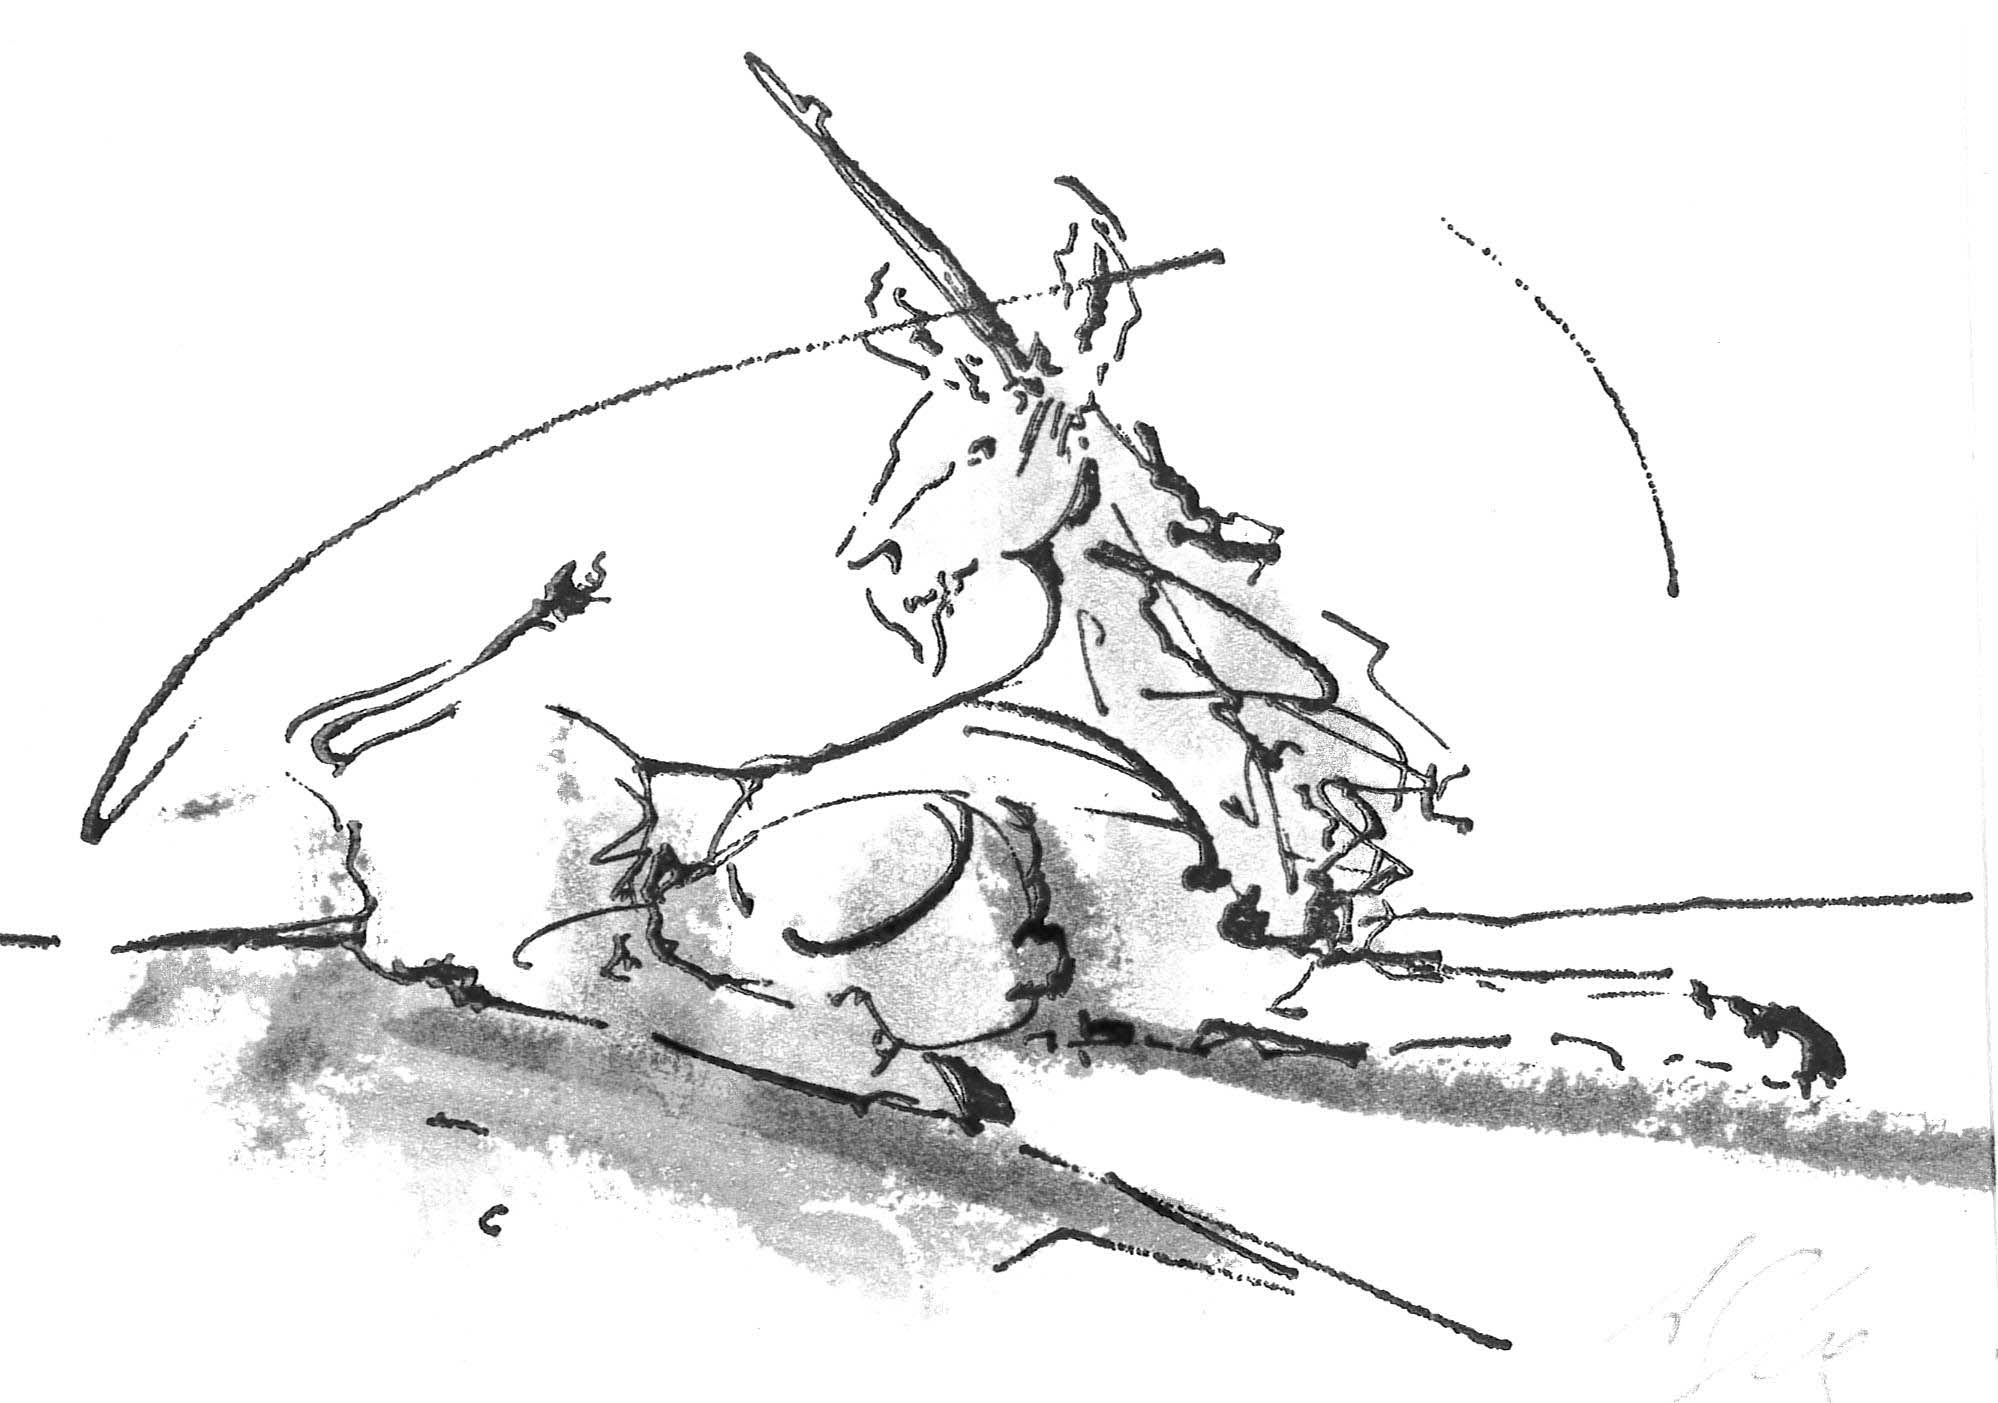 Andrew Lacey's illustration for Mary's Guardian pamphlet